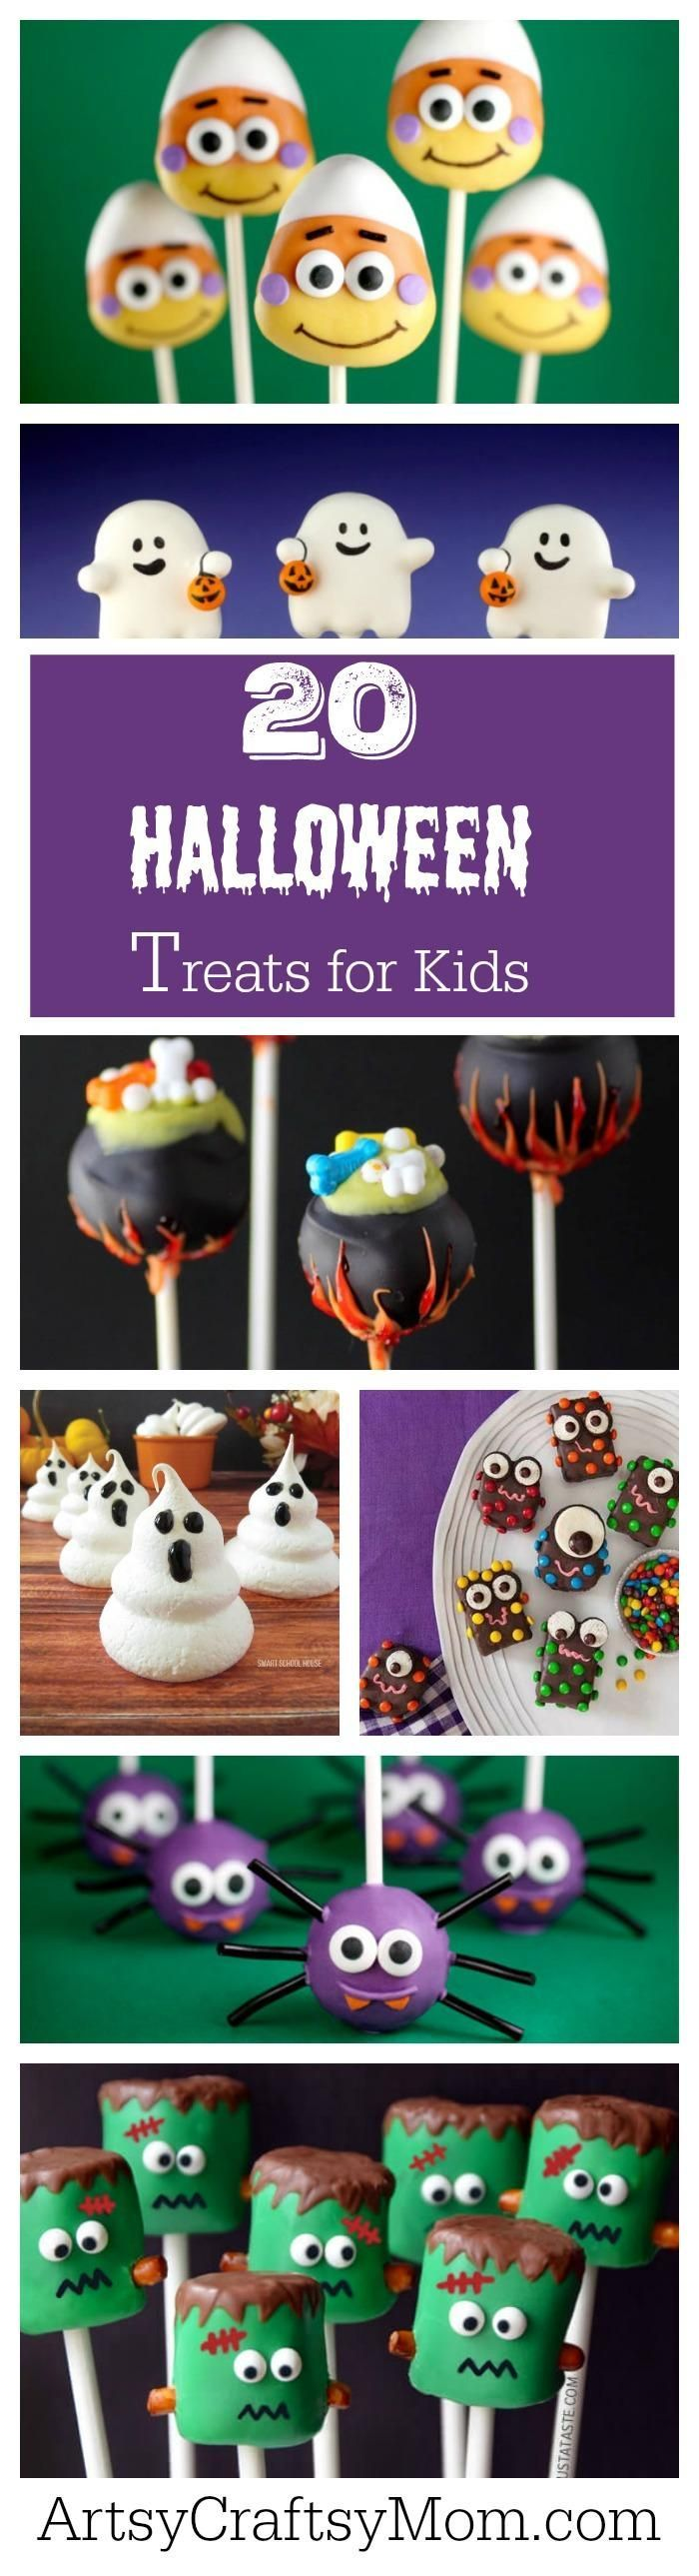 Treats for Halloween needn't be gross or scary all the time, they can also be cute!! Here are 20 adorable Halloween treats that are perfect for kids!